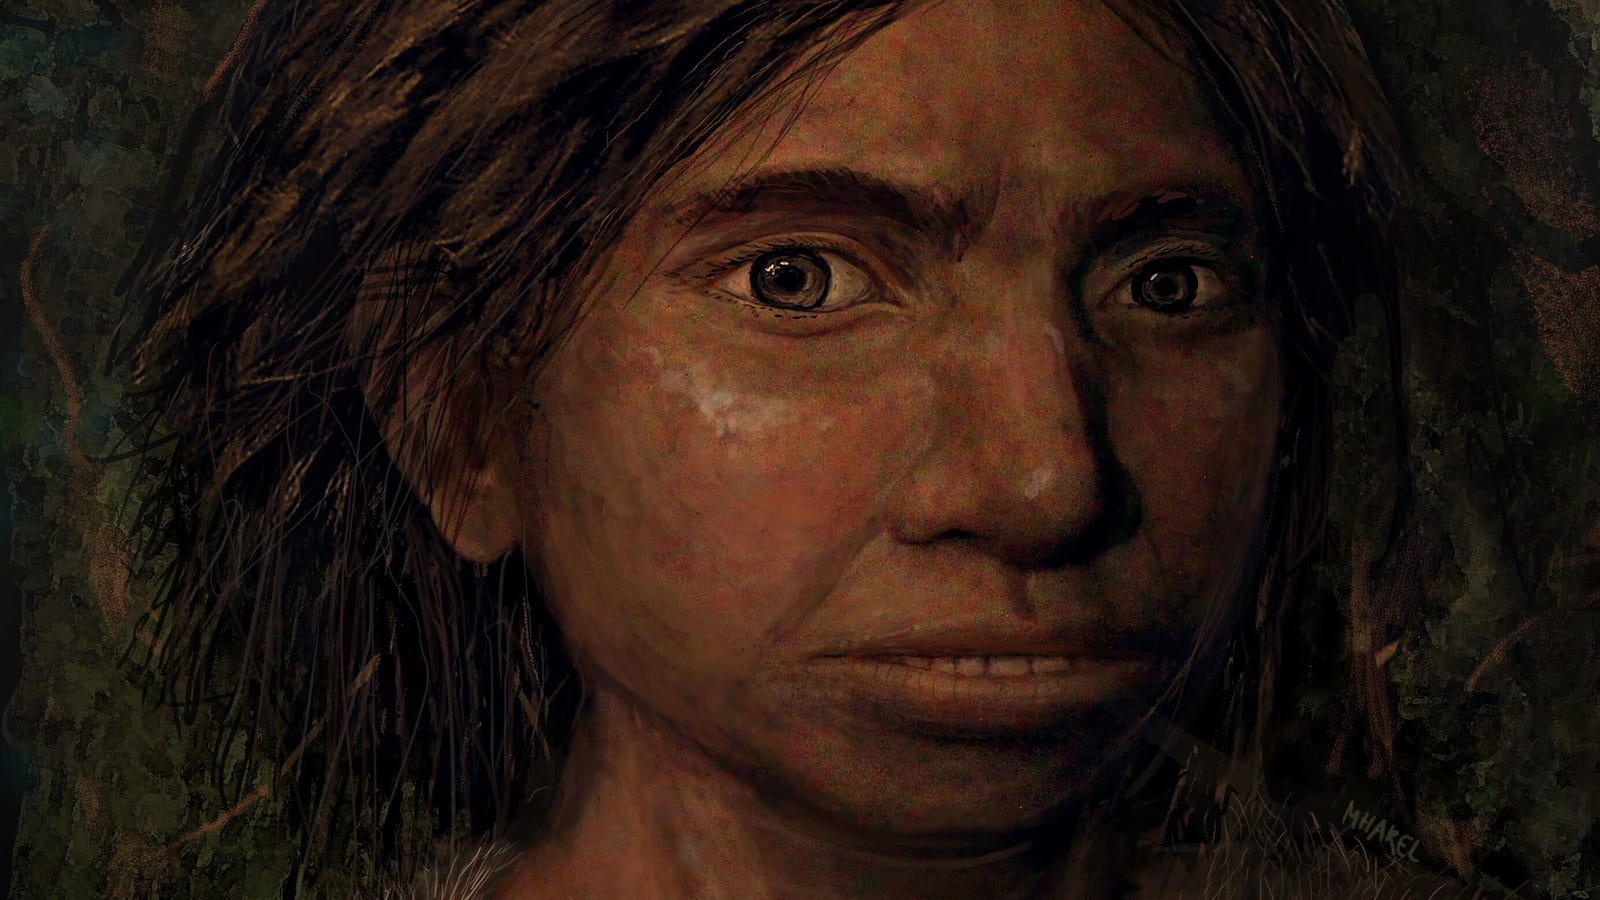 Facial Reconstruction Shows What the Enigmatic Denisovans Might Have Looked Like